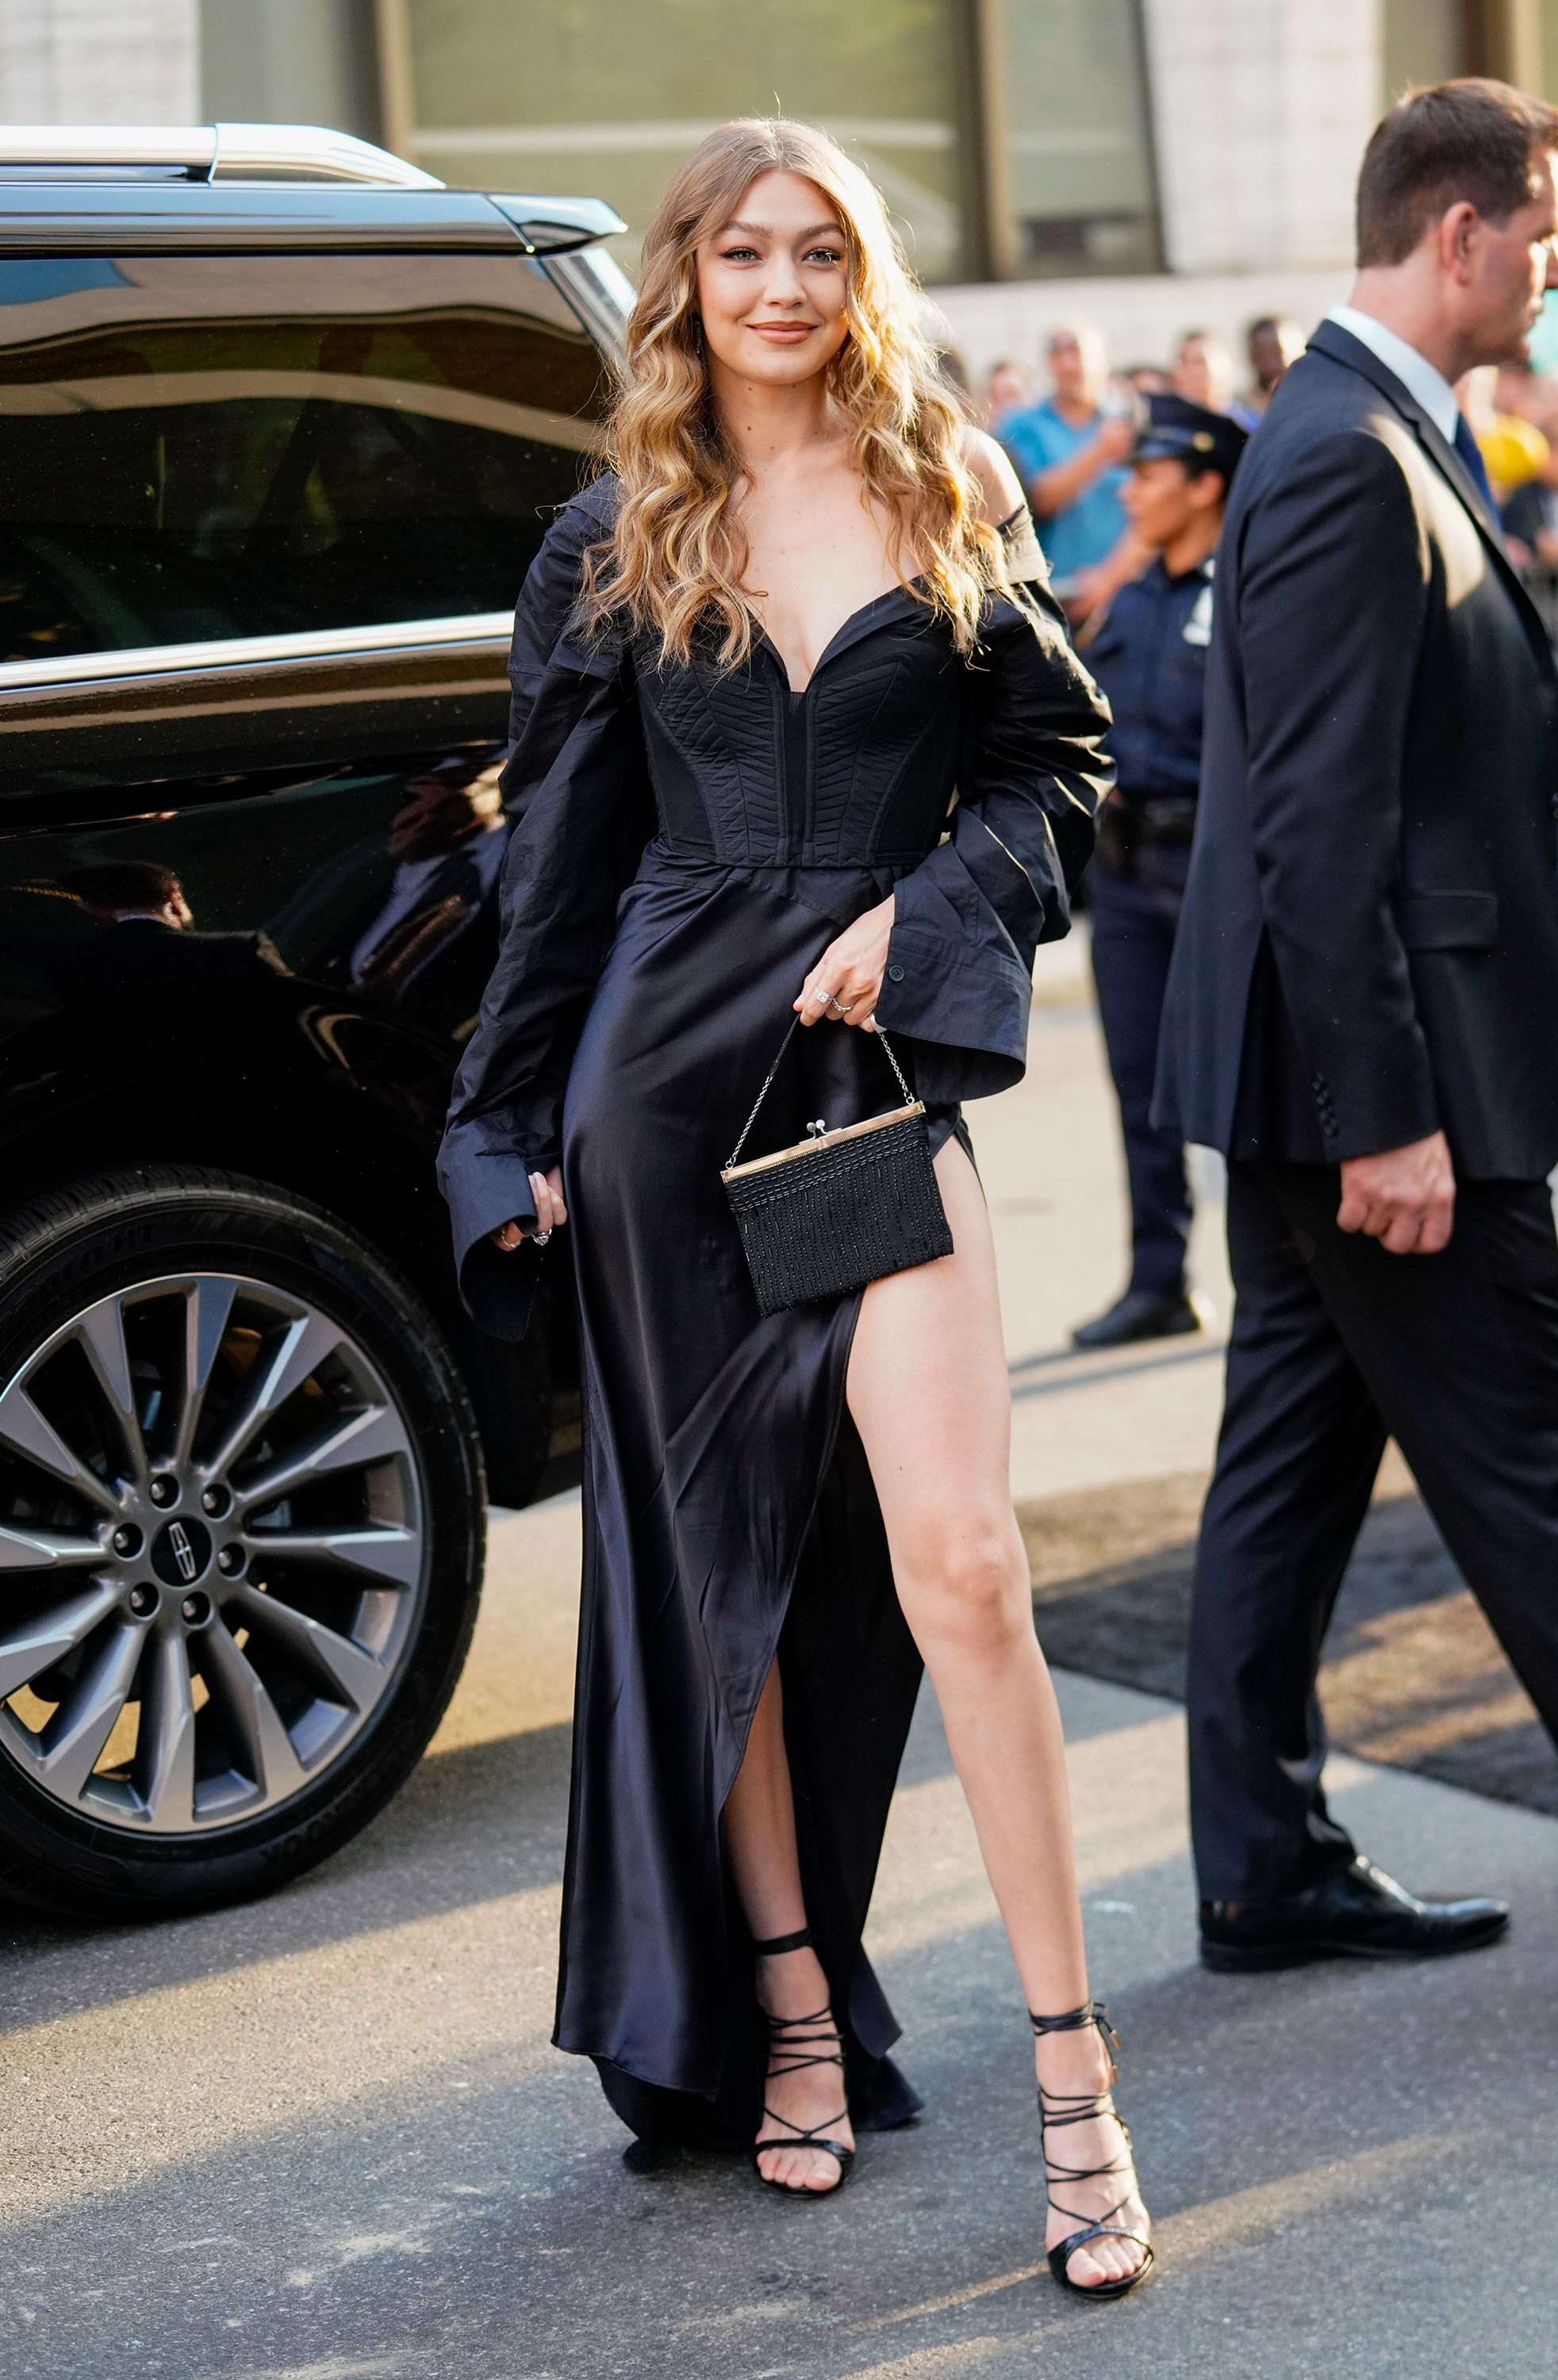 June 5, 2018 Hadid dressed in her red carpet best for Ocean's 8 world premiere in NYC. She wore a Vera Wang dress, DSquared2 heels, and Lorraine Schwartz jewelry.